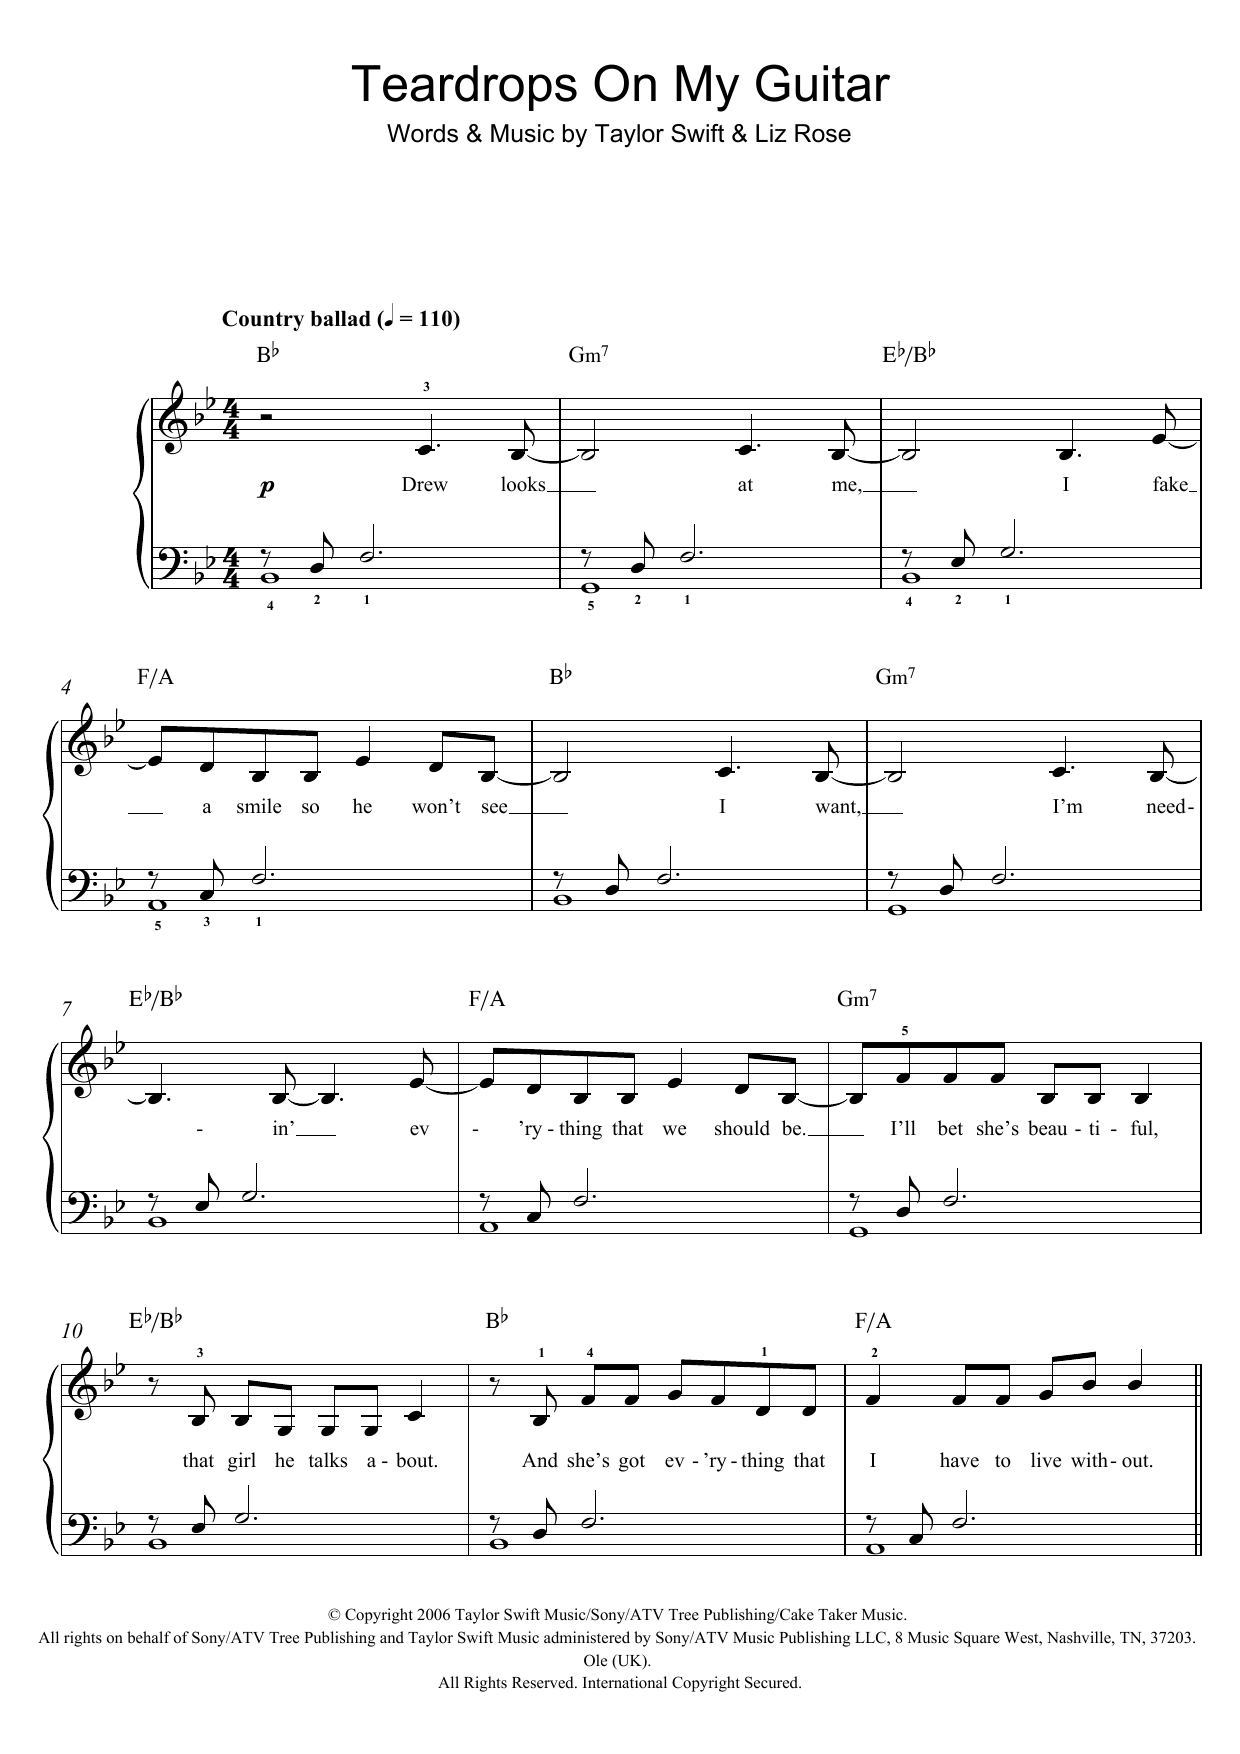 Sheet Music Digital Files To Print Licensed Liz Rose Digital Sheet